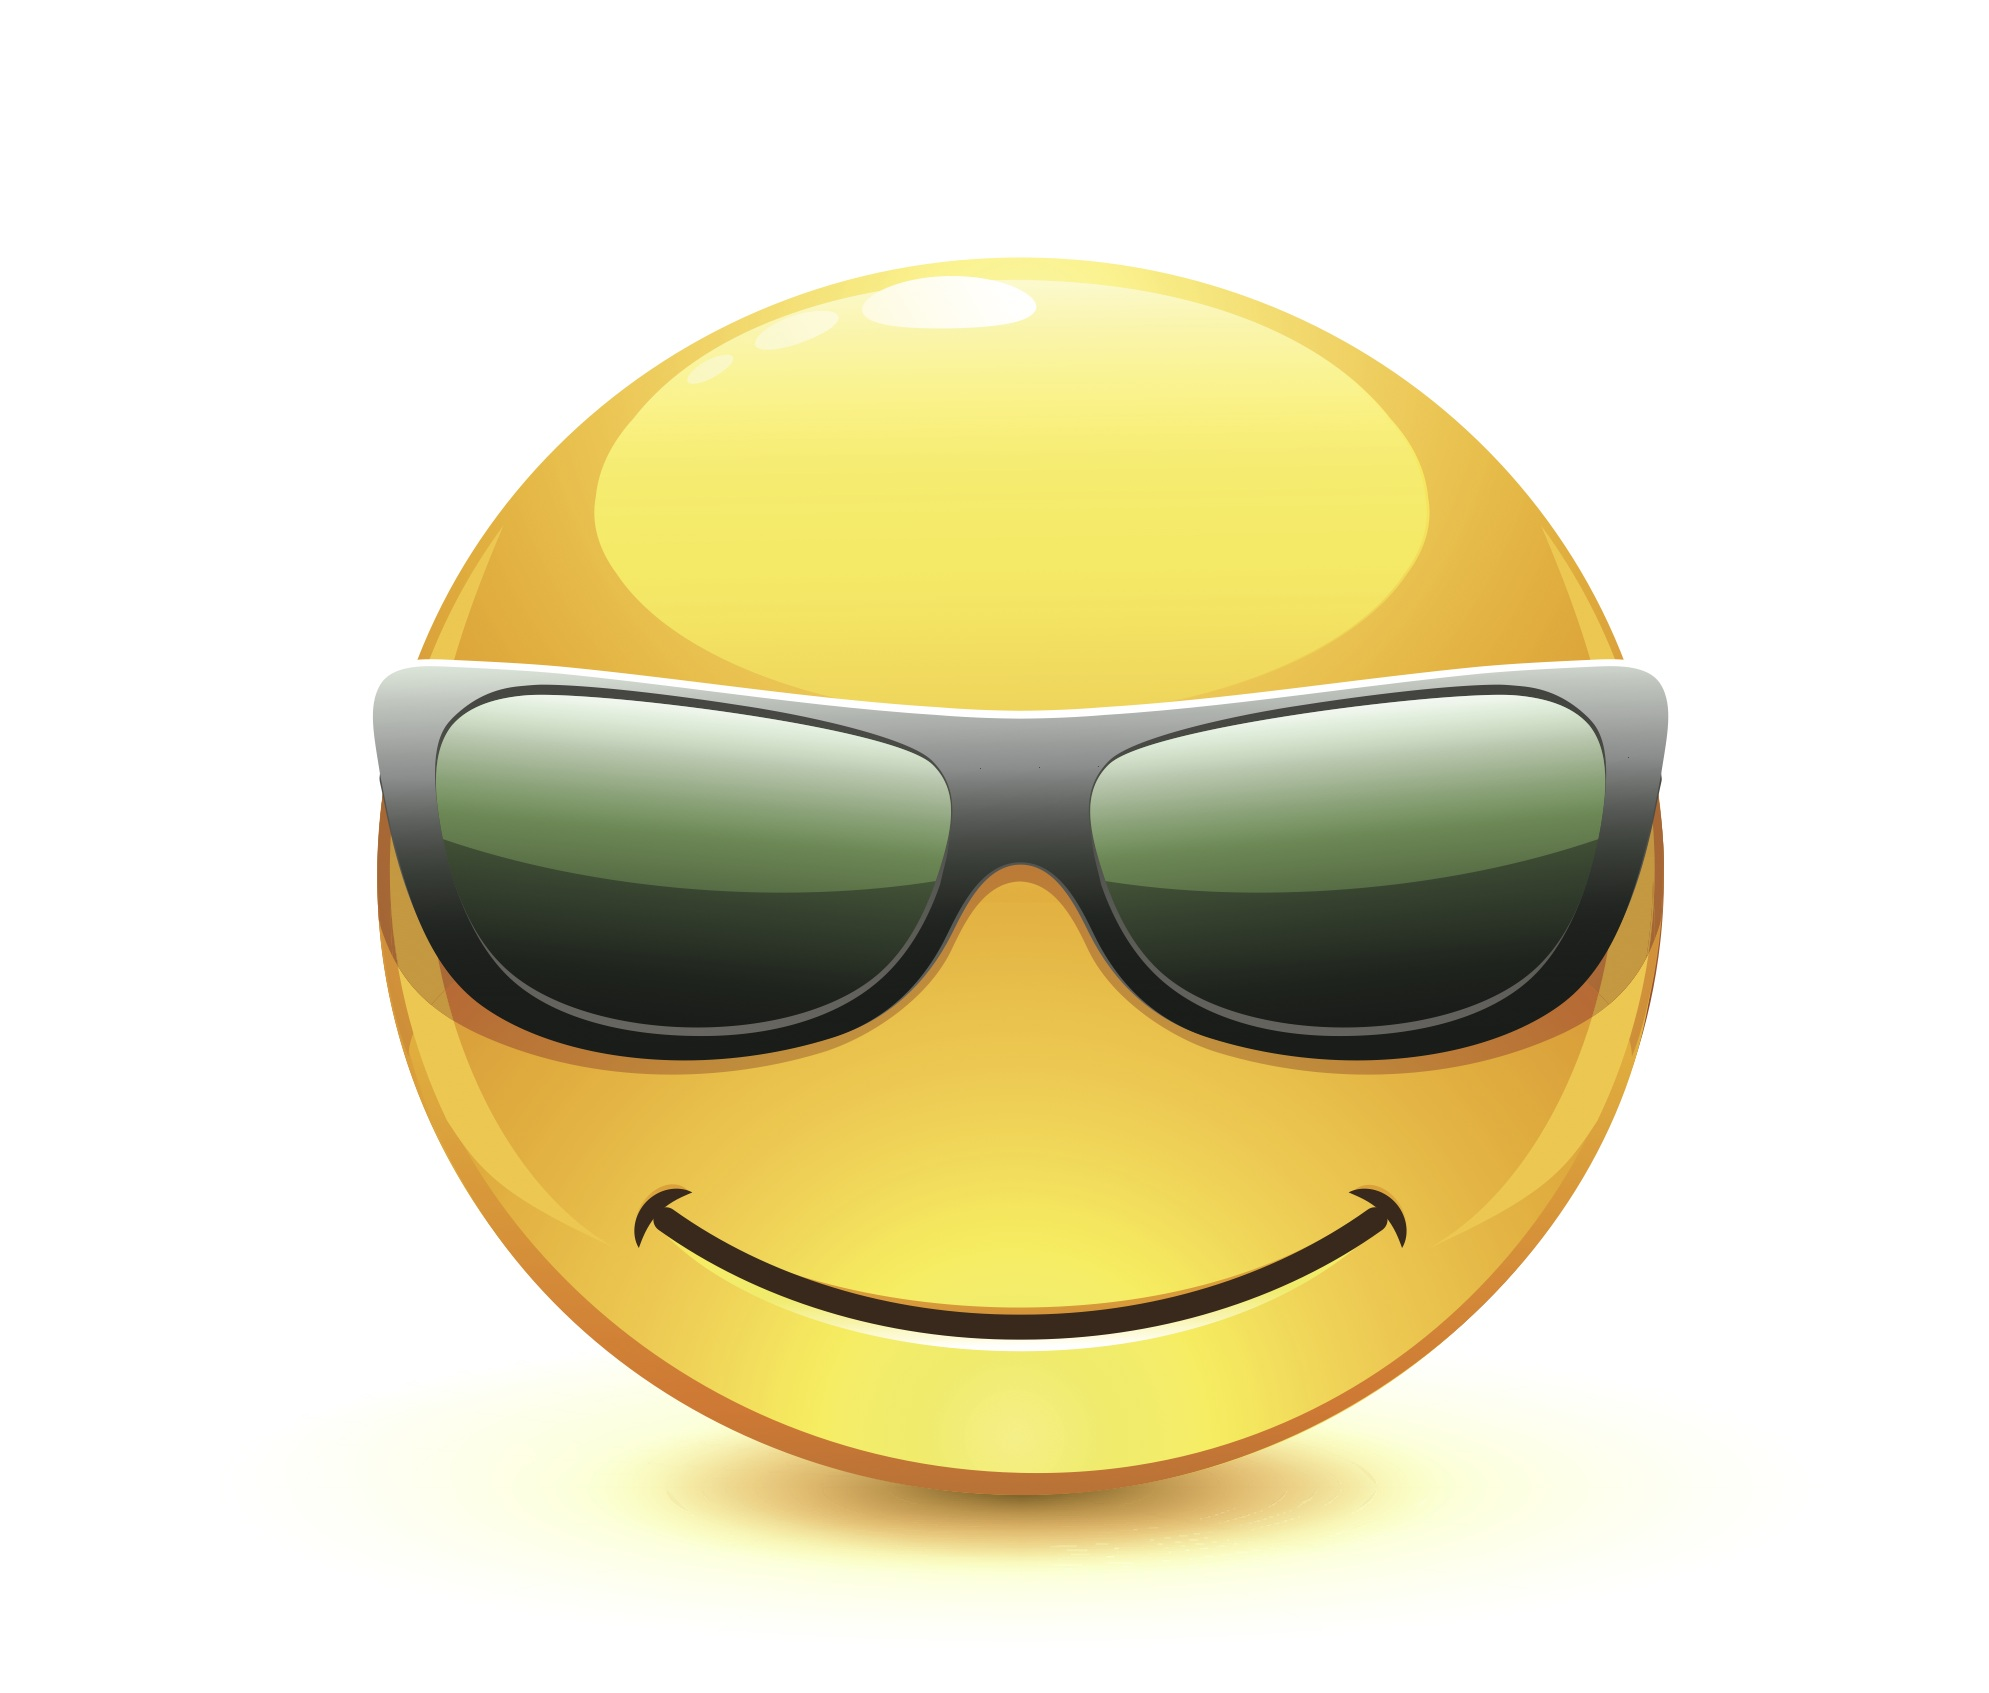 14 Smiley-Face Emoticon Glasses Images